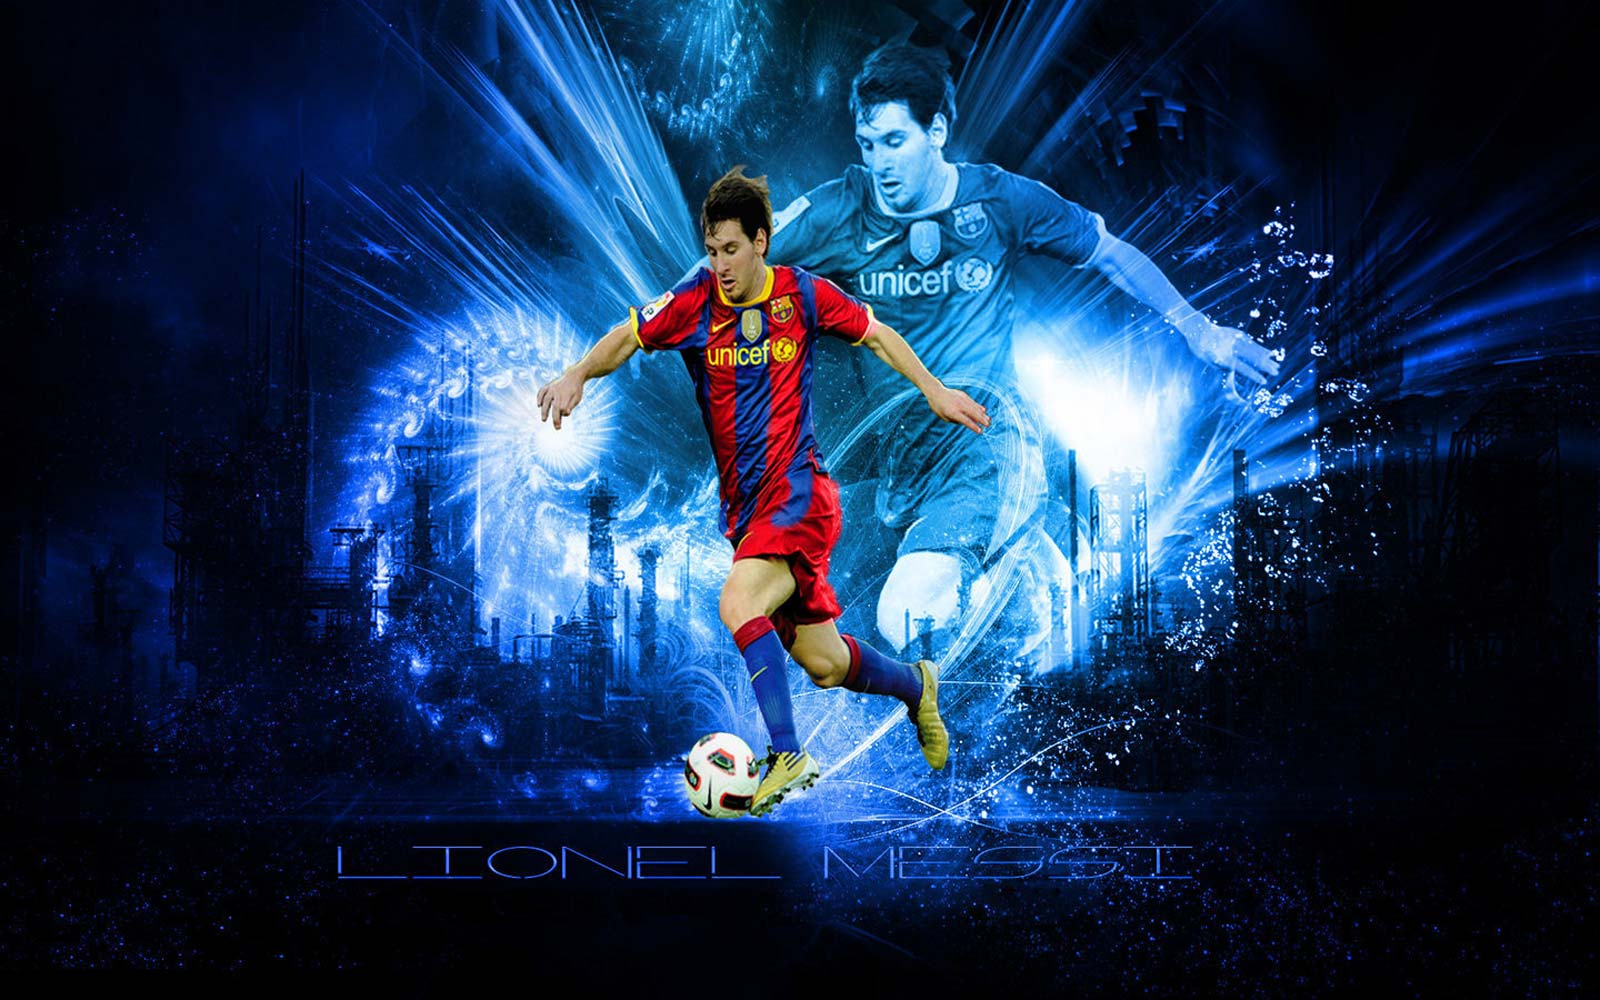 Lionel messi new hd wallpapers 2013 New all hd video